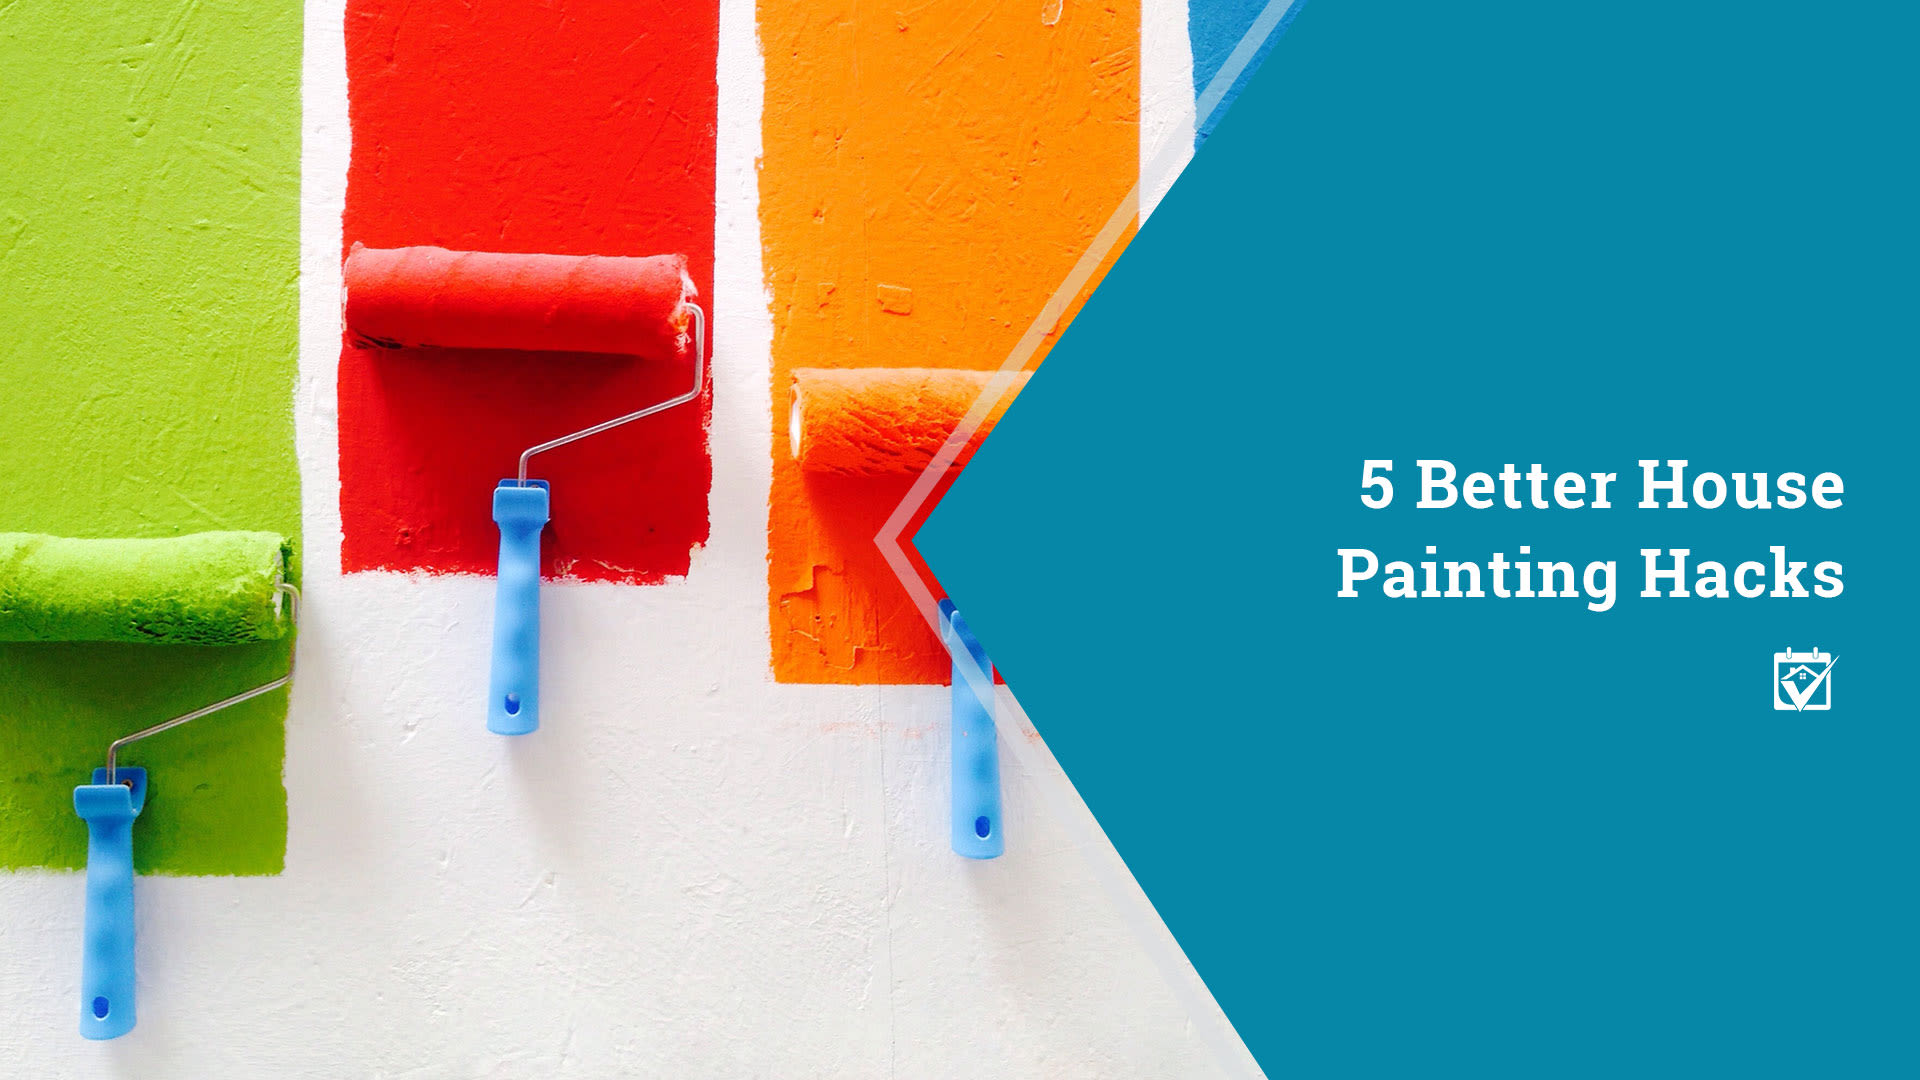 5 Better House Painting Hacks